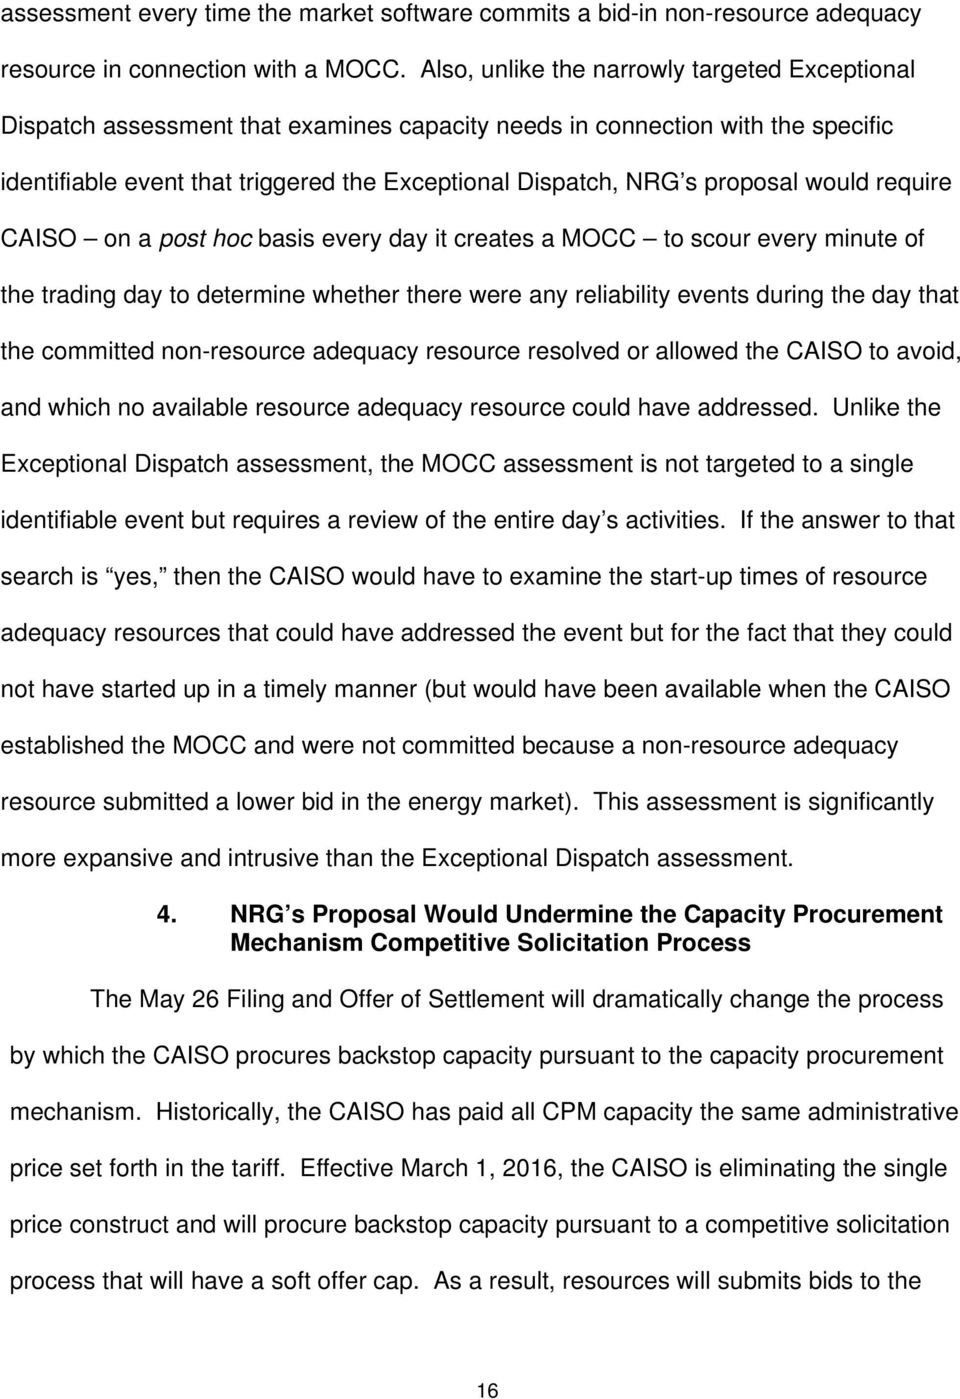 proposal would require CAISO on a post hoc basis every day it creates a MOCC to scour every minute of the trading day to determine whether there were any reliability events during the day that the